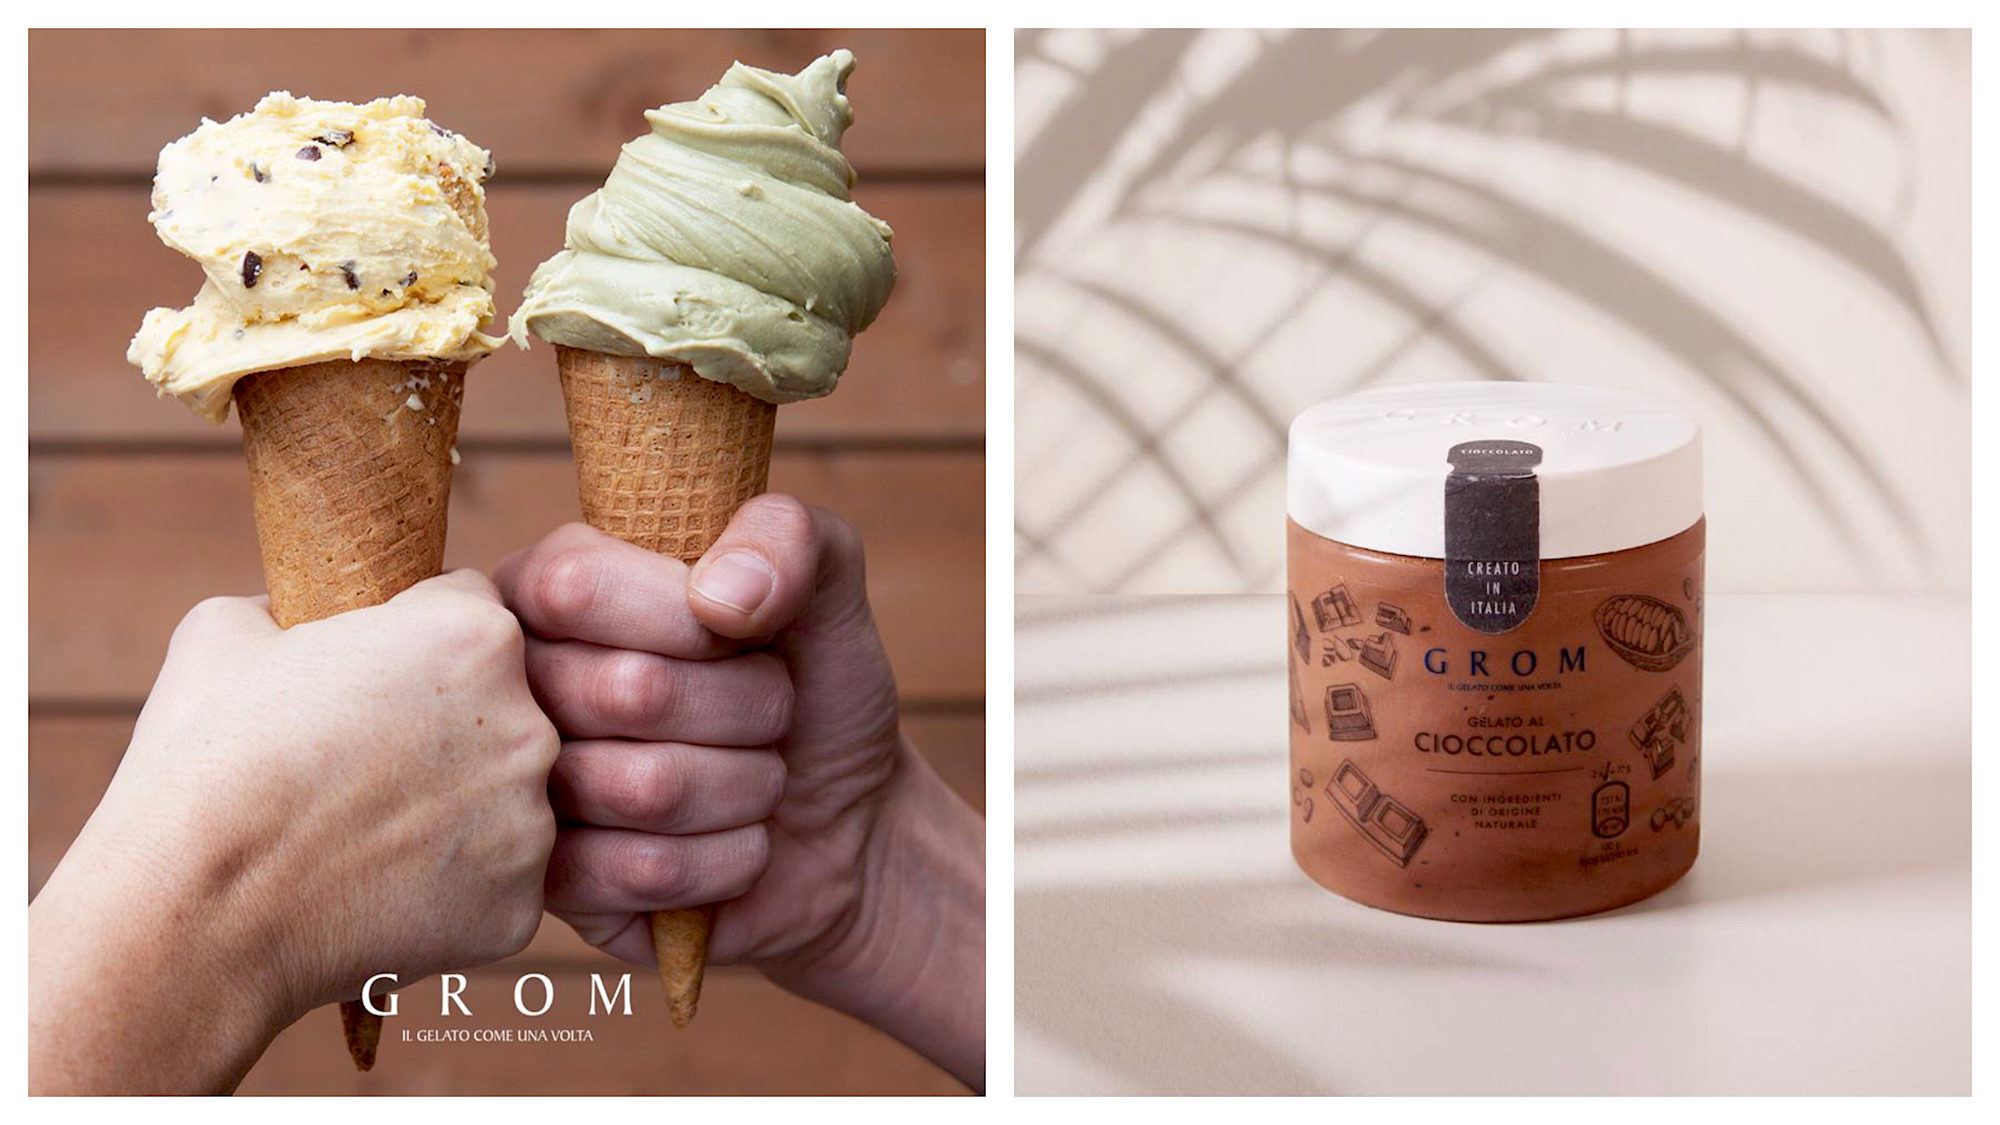 Buy gluten-free ice cream in Paris this summer at GROM, which serves generous portions of ice cream in cones (left) as well as chocolate spreads in pots to take home (right).